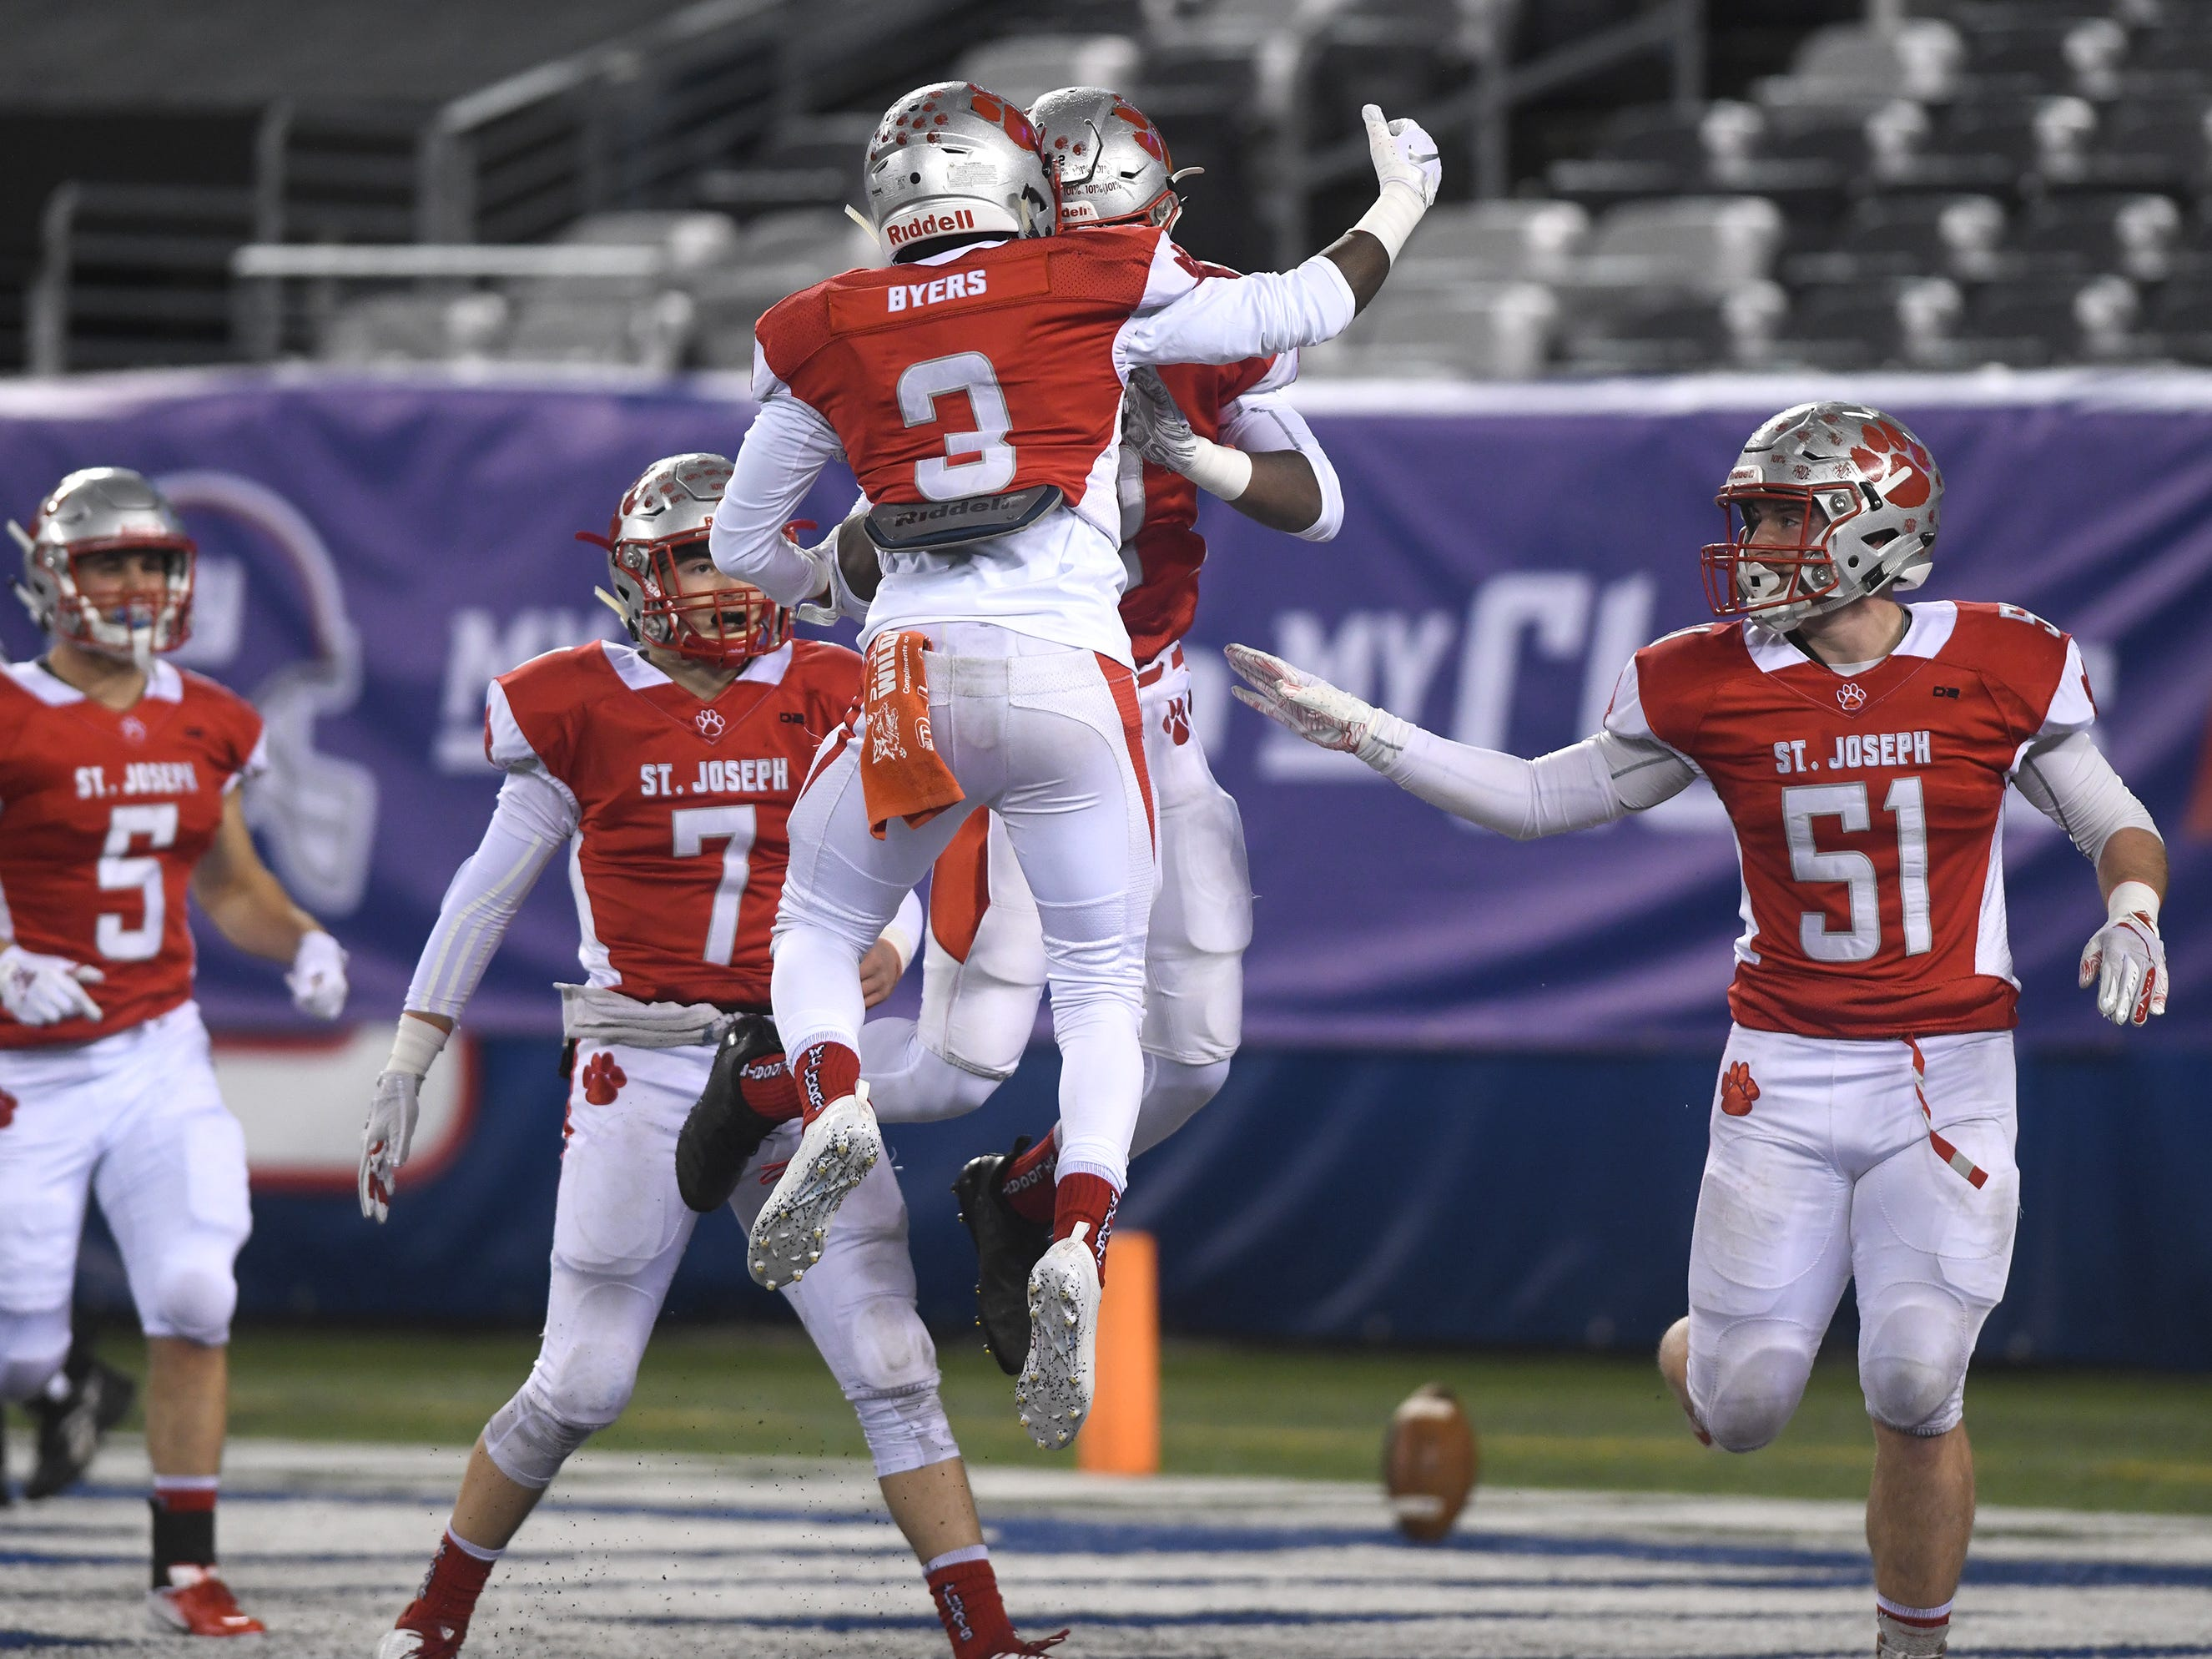 St. Joseph's Ahmad Ross (2) celebrates a touchdown run with Jada Byers (3) during a game against Holy Spirit. The Wildcats topped the Spartans, 41-22 at MetLife Stadium on Friday, November 30, 2018.